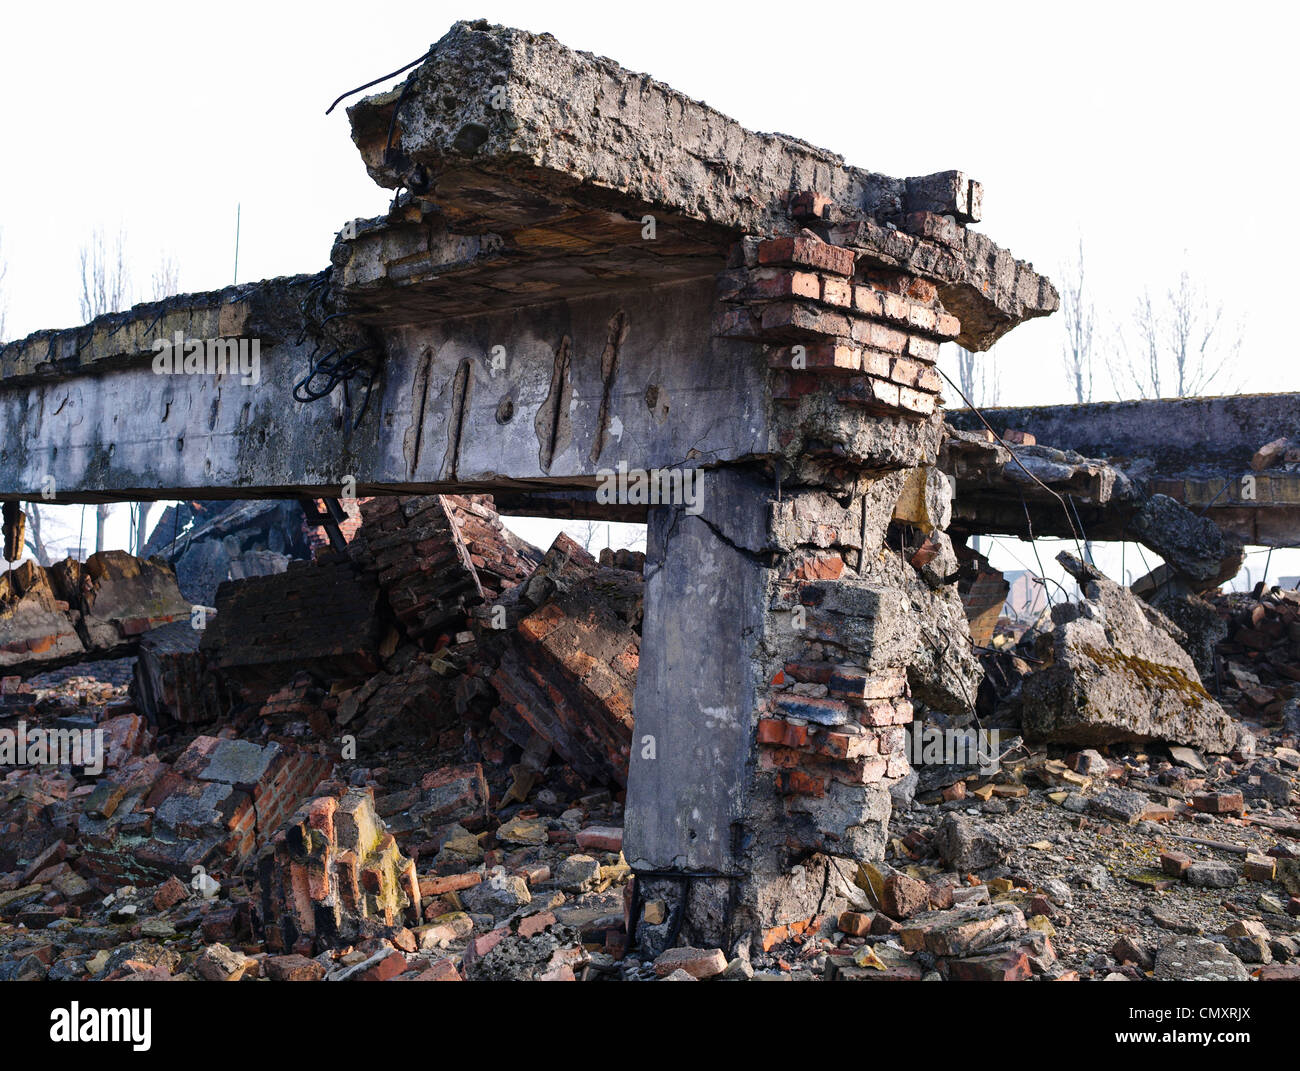 The ruins of the Auschwitz II, Birkenau gas chamber, Poland - Stock Image